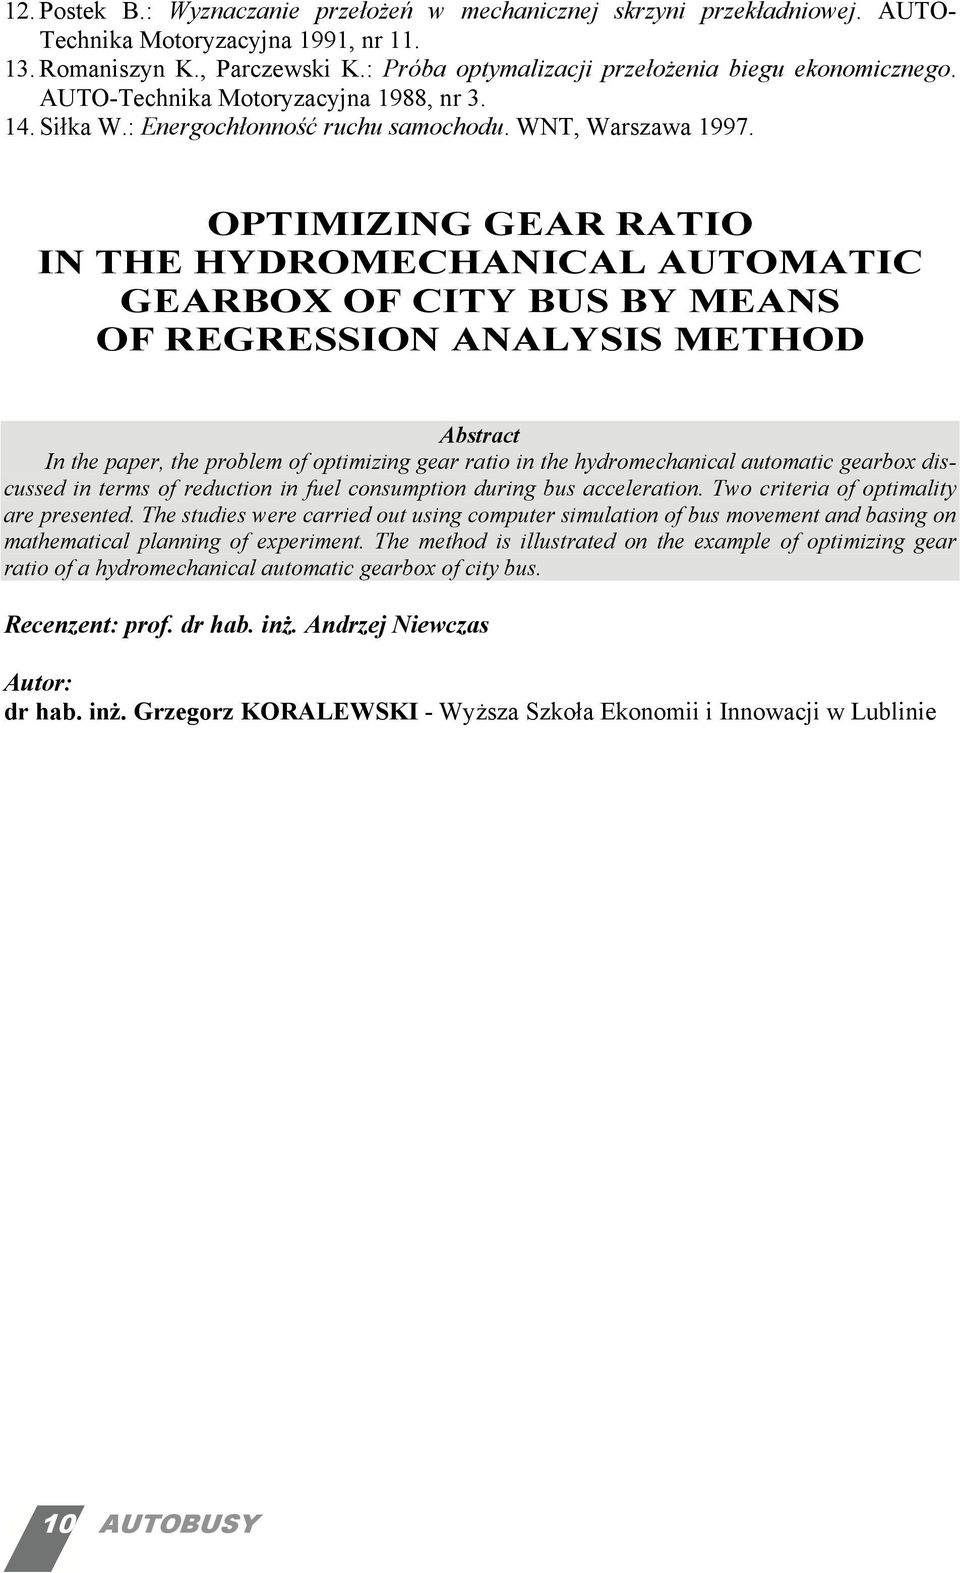 OPTIMIZING GEAR RATIO IN THE HYDROMECHANICAL AUTOMATIC GEARBOX OF CITY BUS BY MEANS OF REGRESSION ANALYSIS METHOD Abstract In the paper, the problem of optimizing gear ratio in the hydromechanical